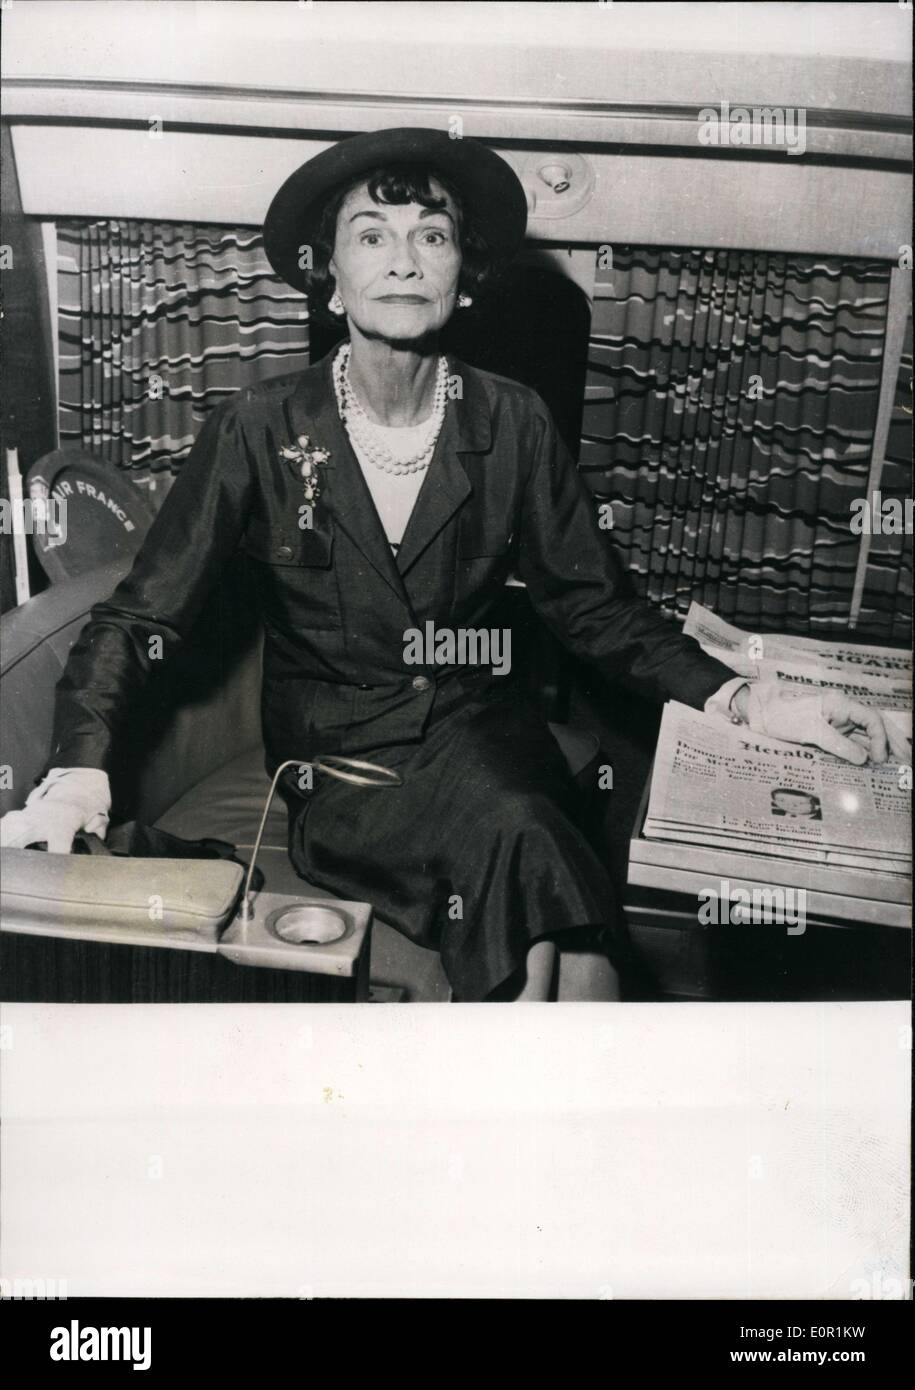 916ece6f4f7 Coco Chanel Photos   Coco Chanel Images - Page 2 - Alamy